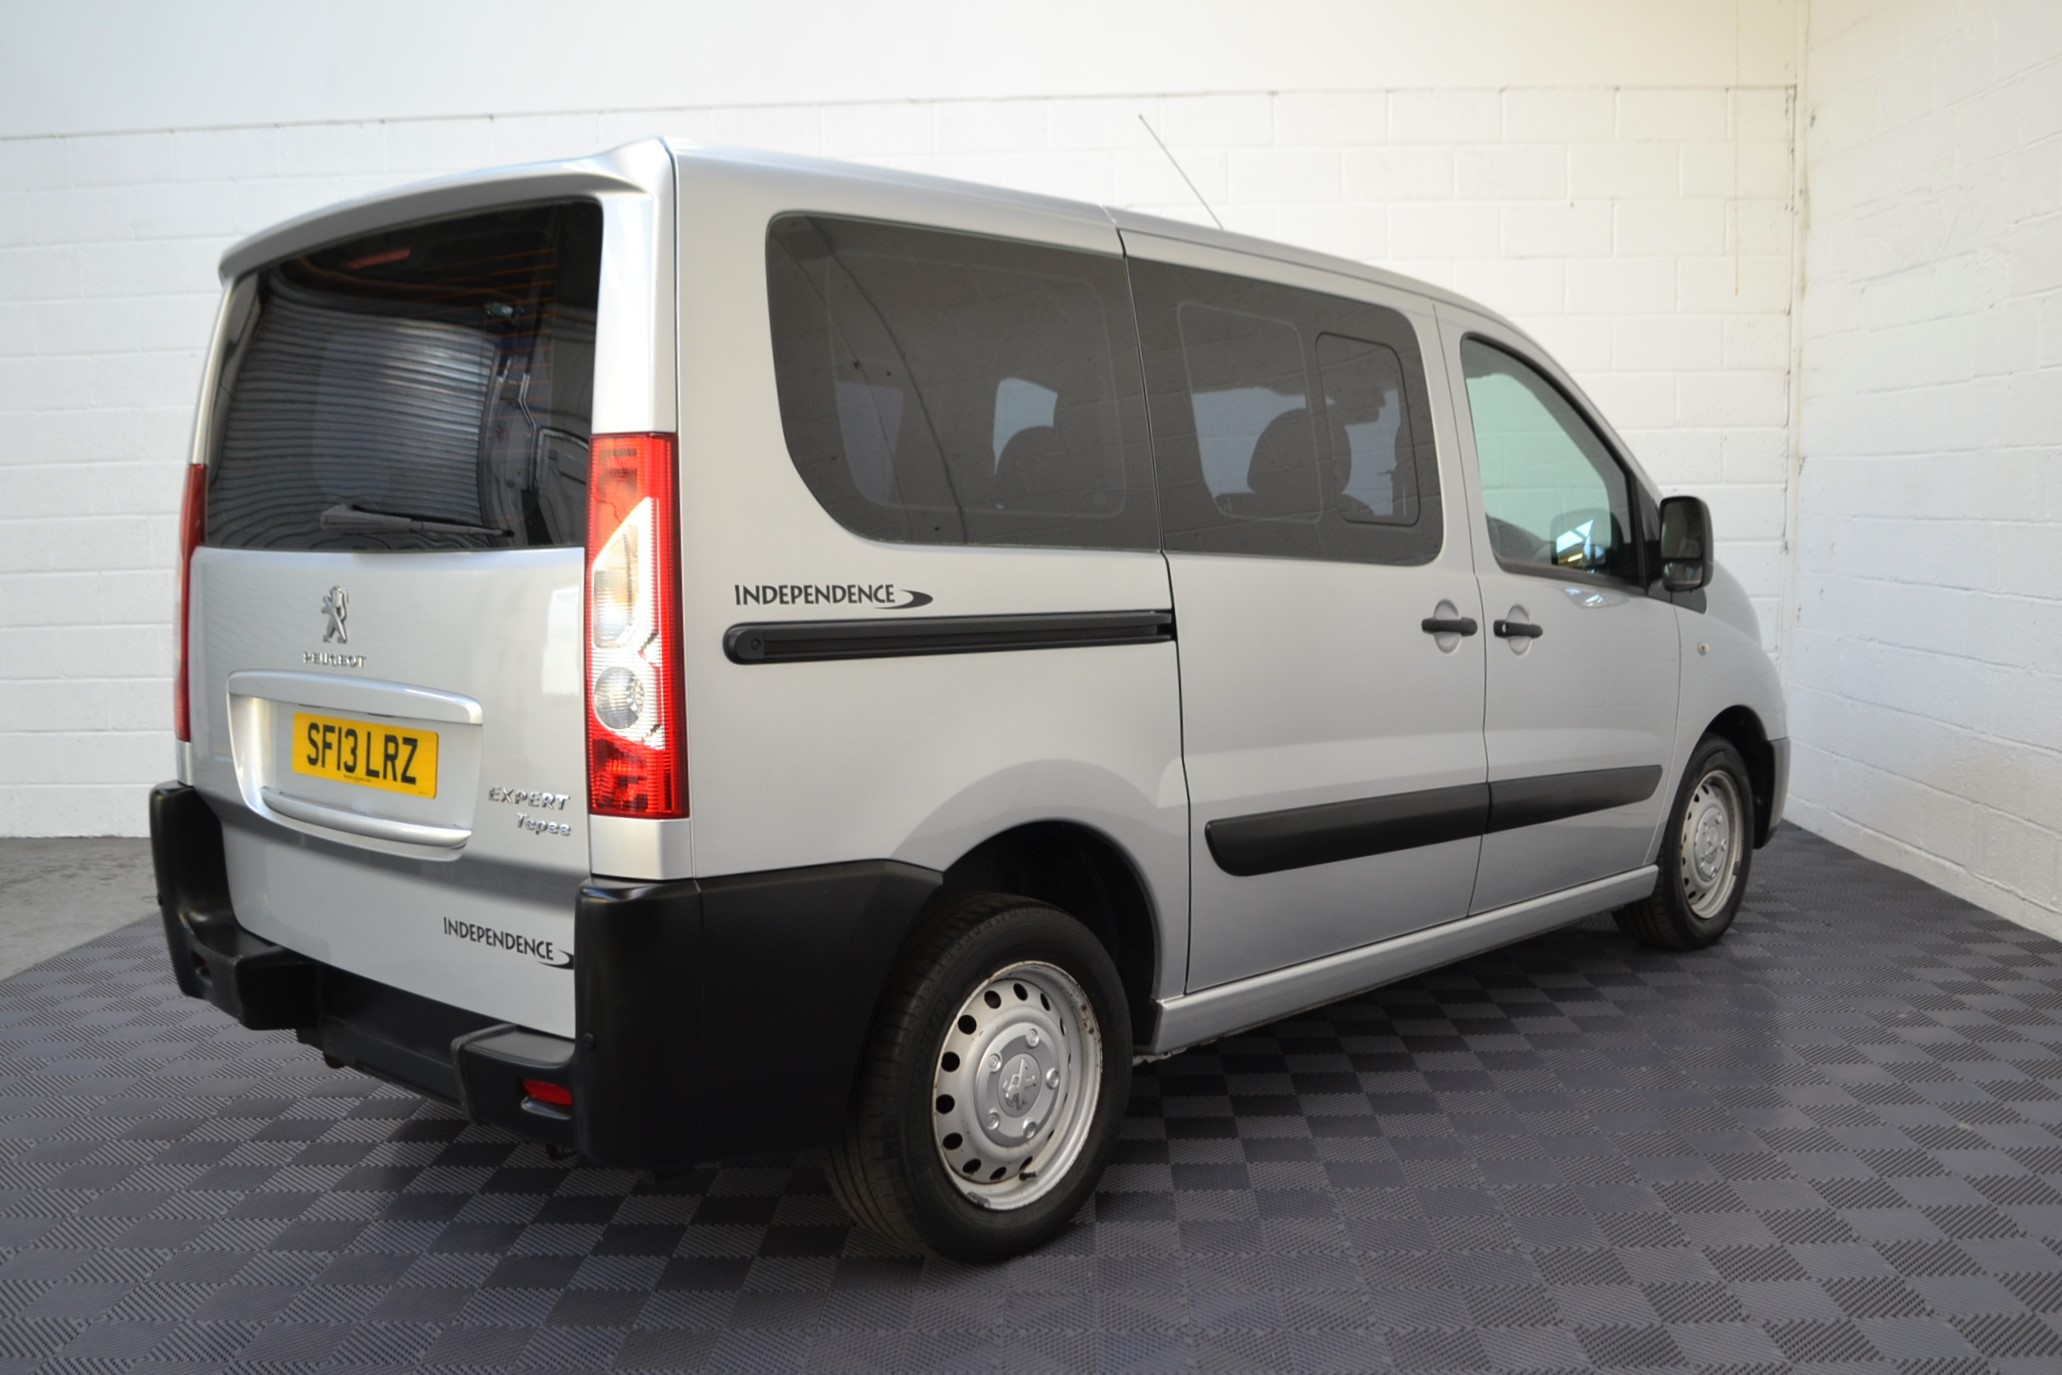 Disabled Cars For Sale Bristol Wheelchair Accessible Vehicles Used For Sale Somerset Devon Dorset Bath Peugeot Expert SF13 LRZ 7